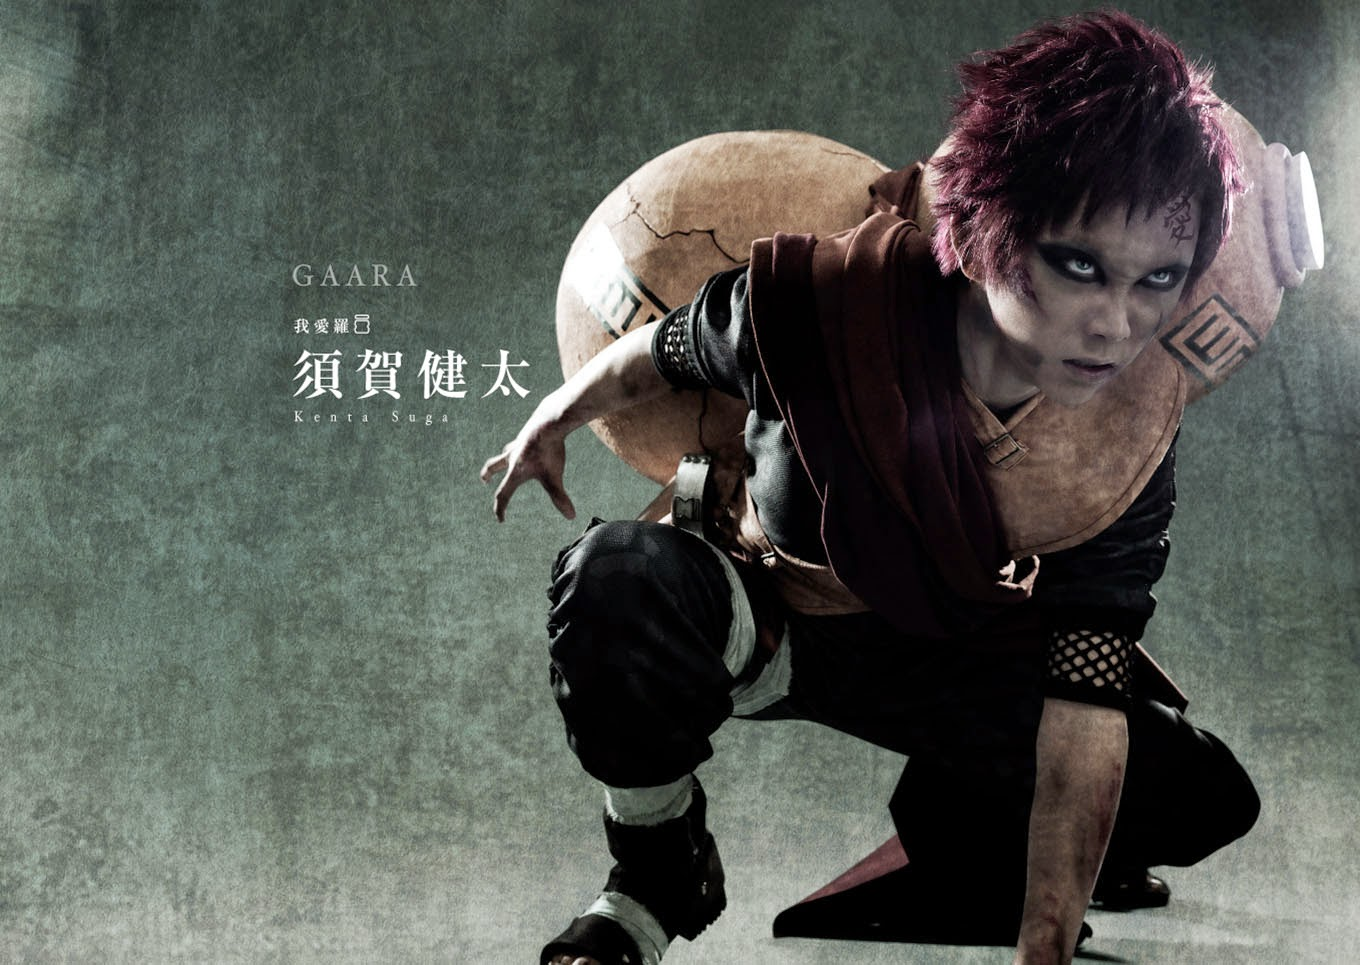 Naruto - live action film - Gaara